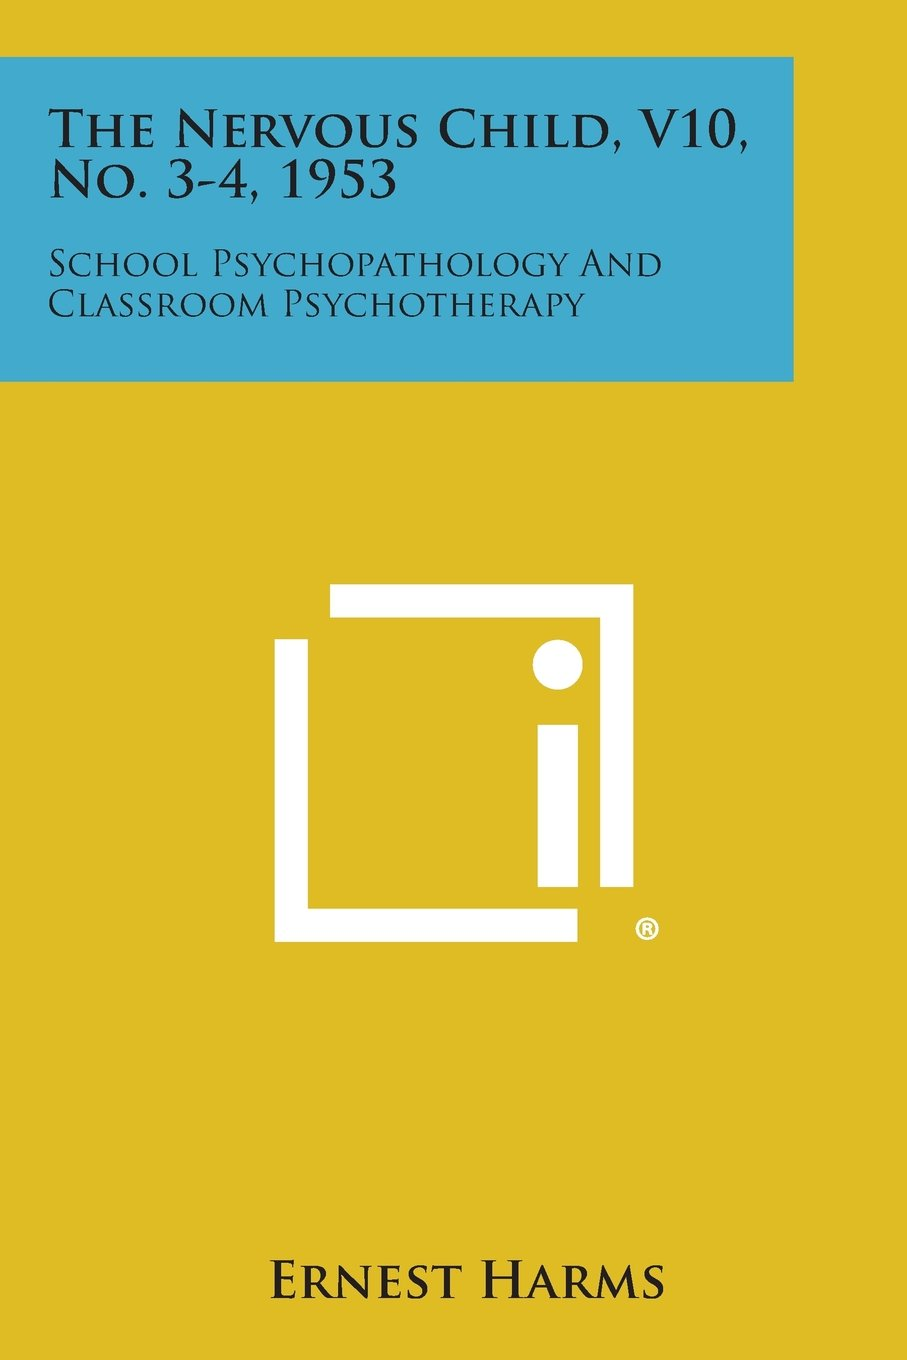 The Nervous Child, V10, No. 3-4, 1953: School Psychopathology and Classroom Psychotherapy PDF